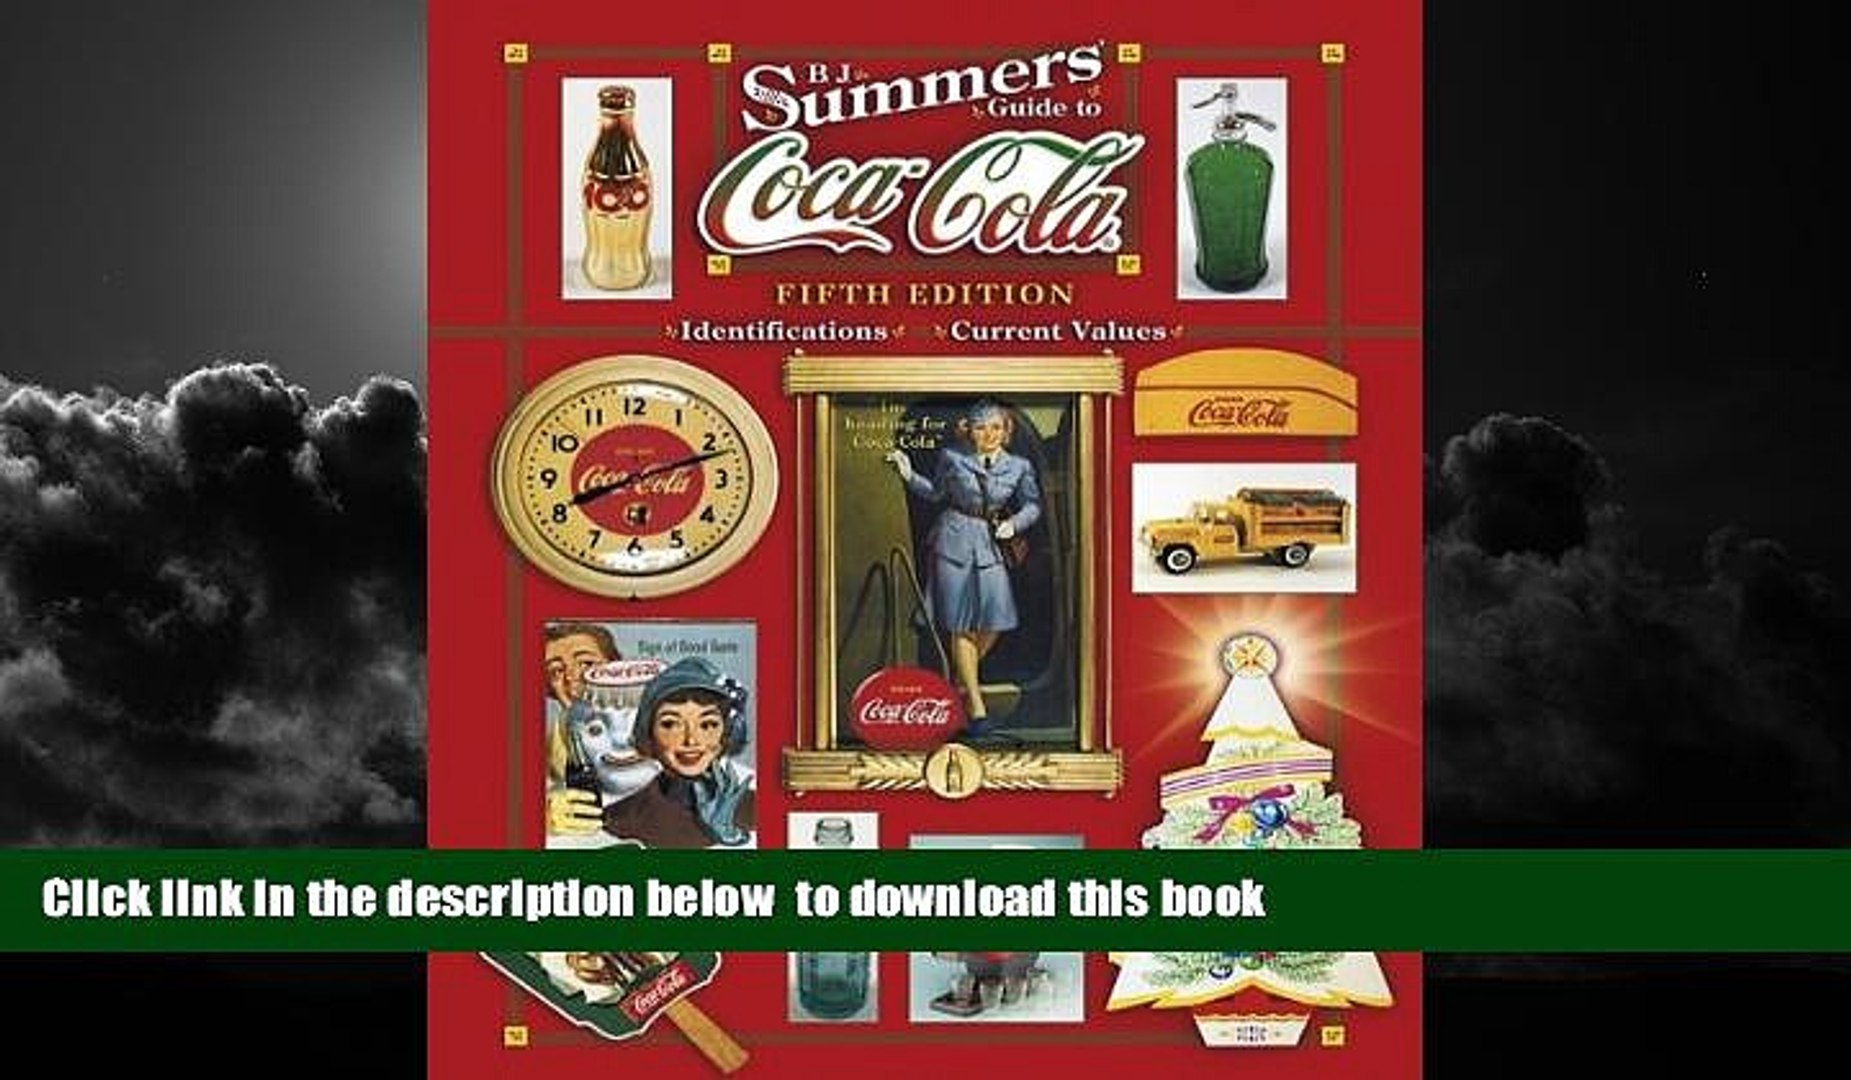 Best Price B. J. Summers B. J. Summers  Guide To Coca-Cola (B J Summer s Guide to Coca Cola